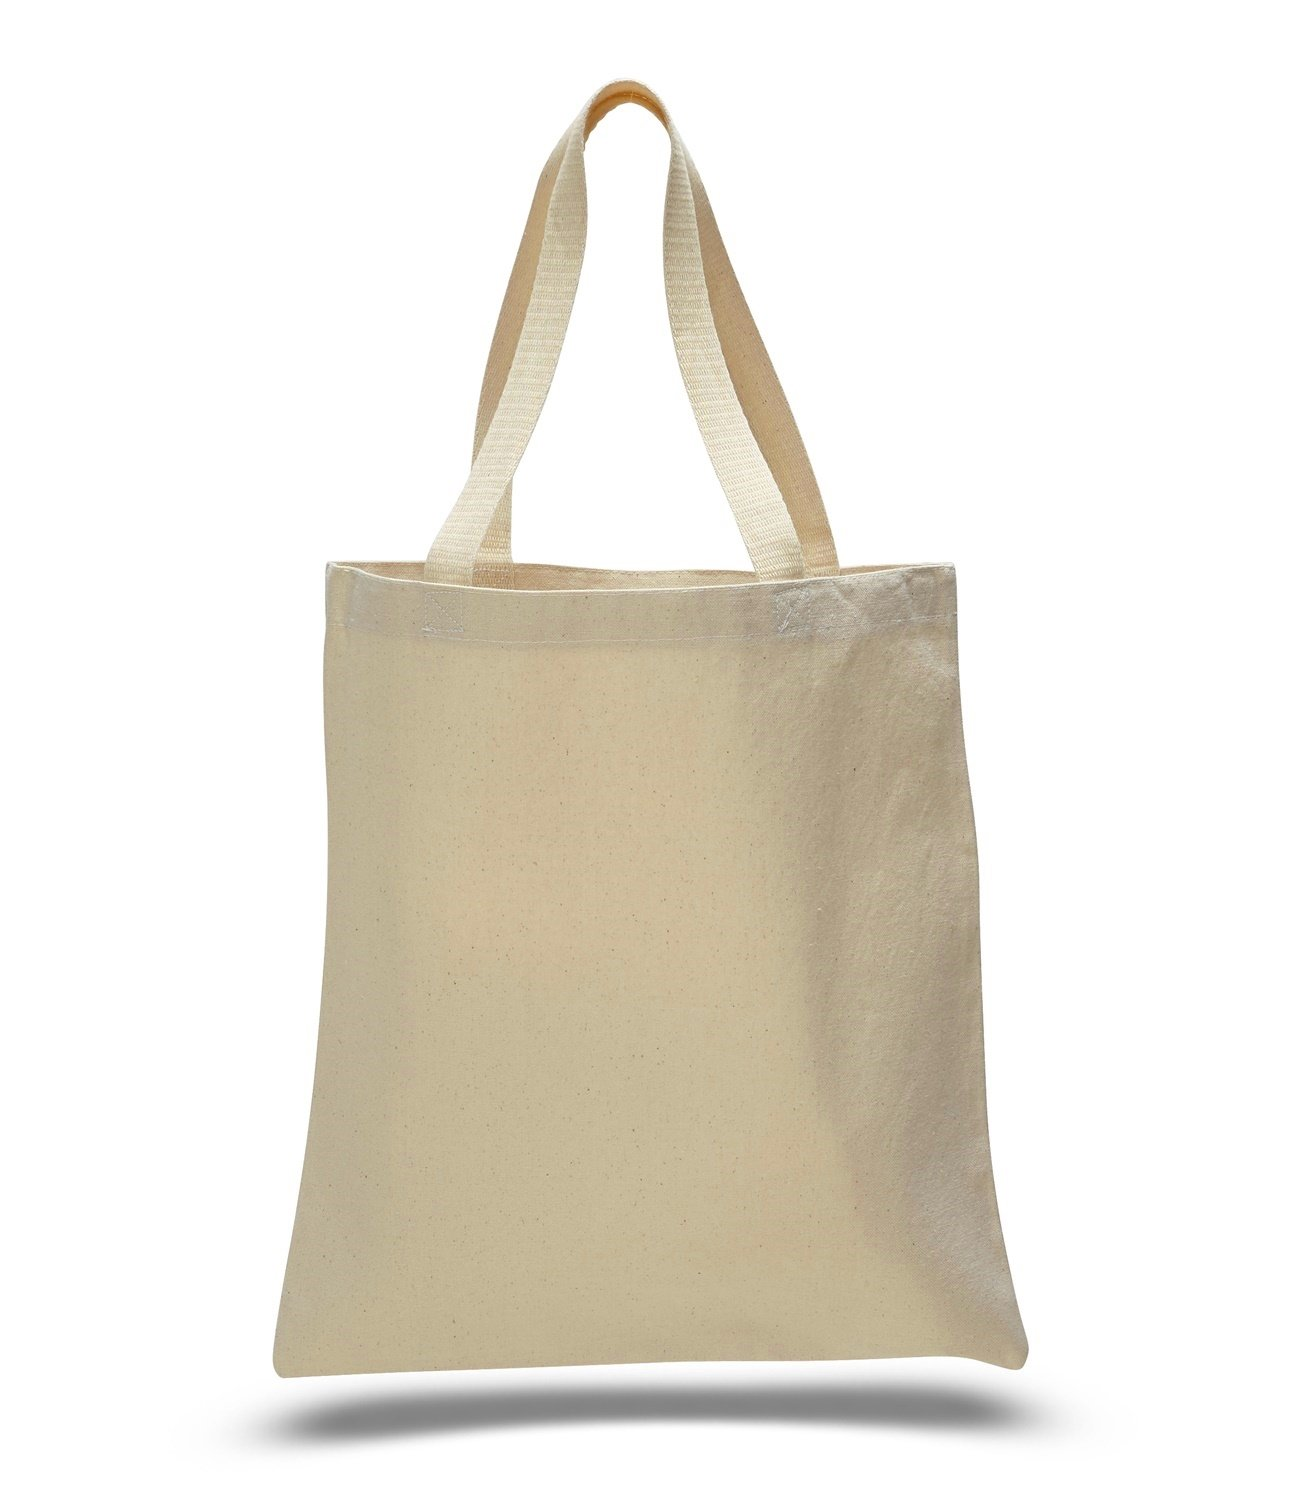 Natural Color Heavy Cotton Canvas Tote Bag (50, Natural) by ToteBagFactory